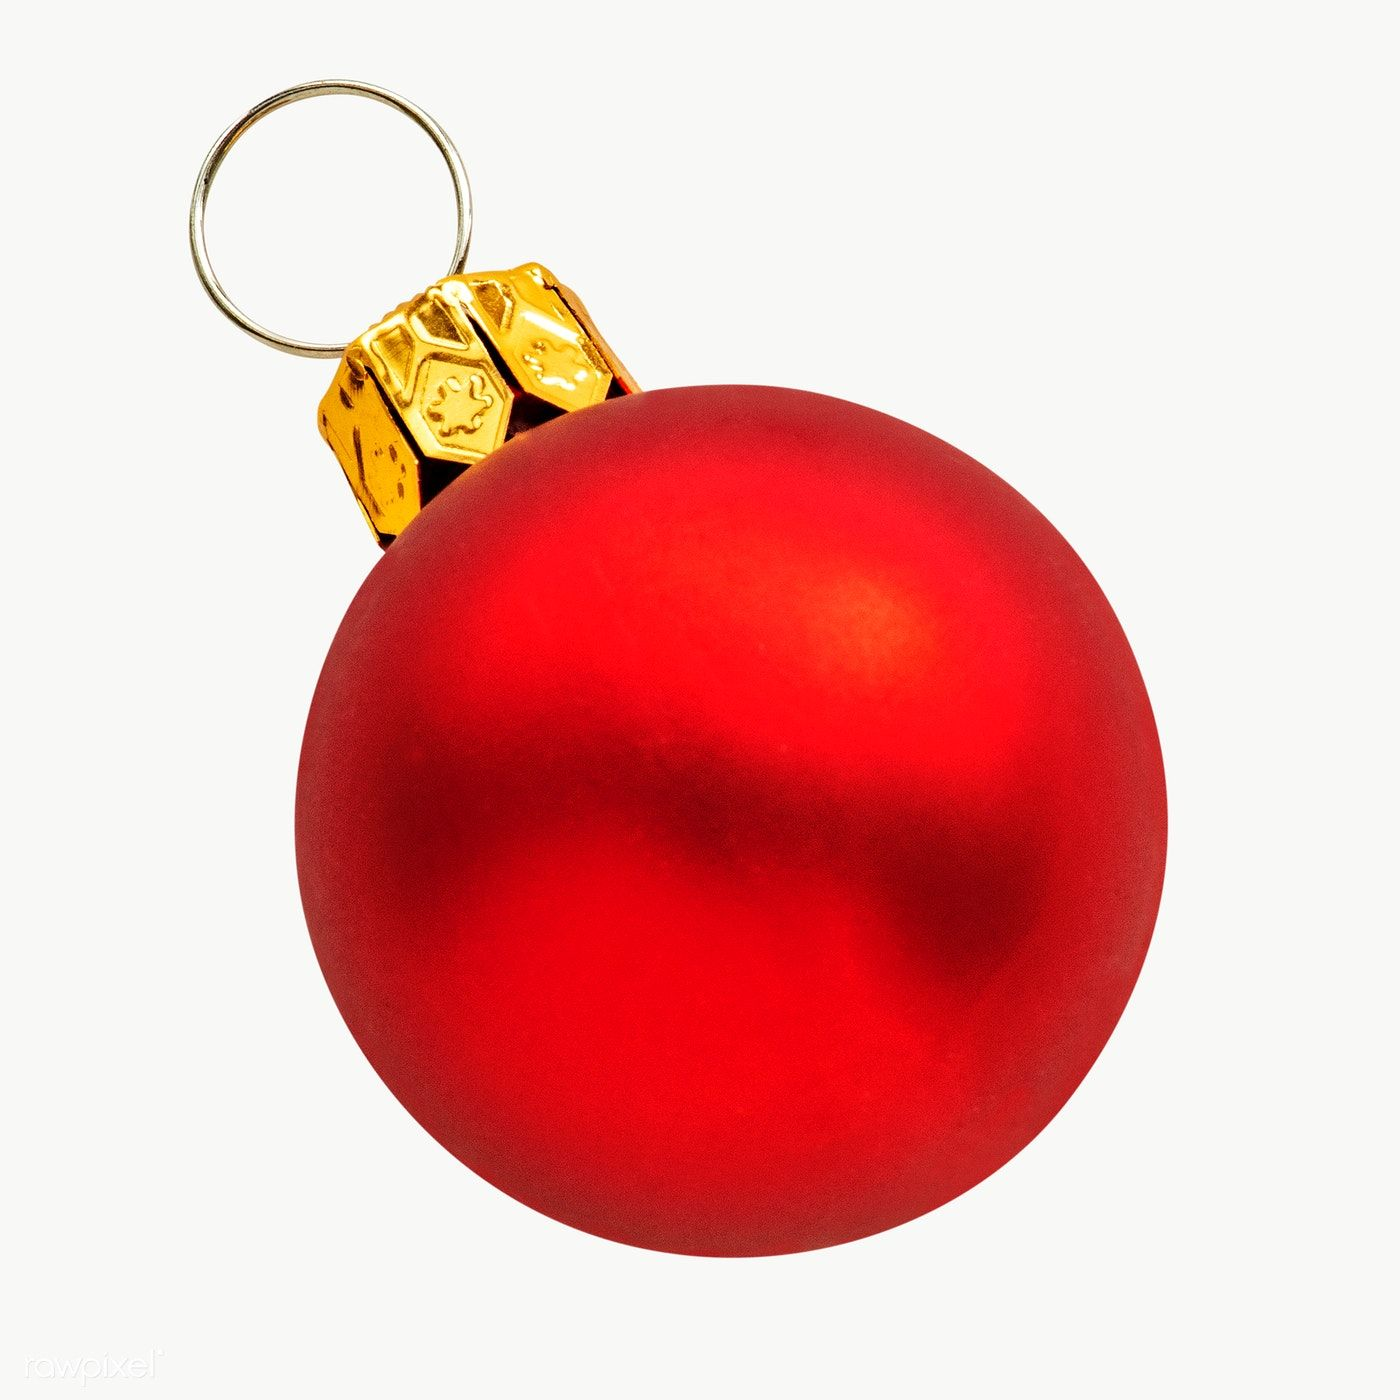 A Shiny Red Ball Christmas Ornament On Transparent Free Image By Rawpixel Com Christmas Ornaments Elegant Christmas Tree Decorations Gold Christmas Ornaments